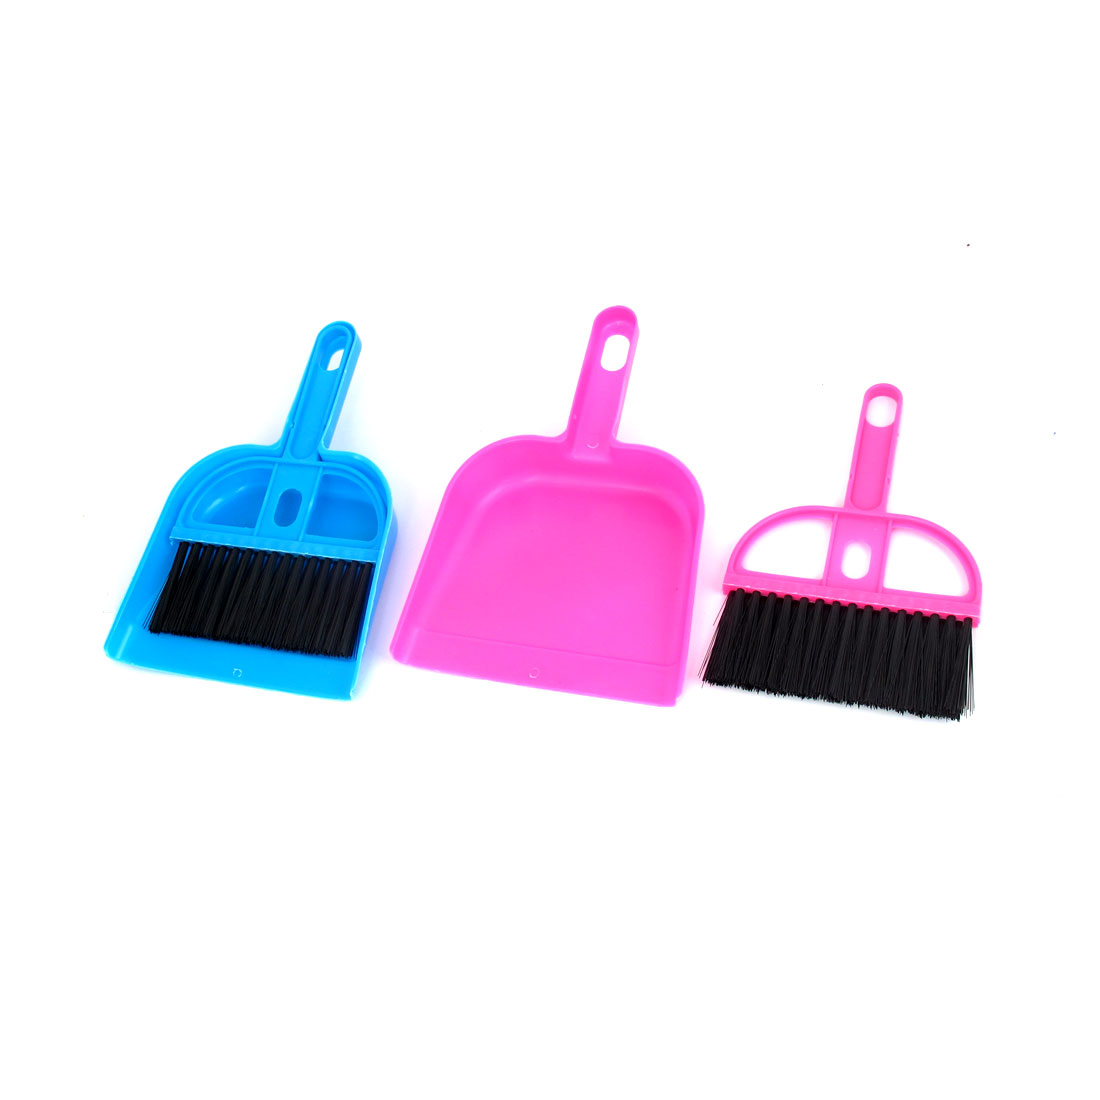 Portable PC Desk Computer Netbook Keyboard Duster Cleaning Cleaner Brush Dustpan Pink Blue 2pcs